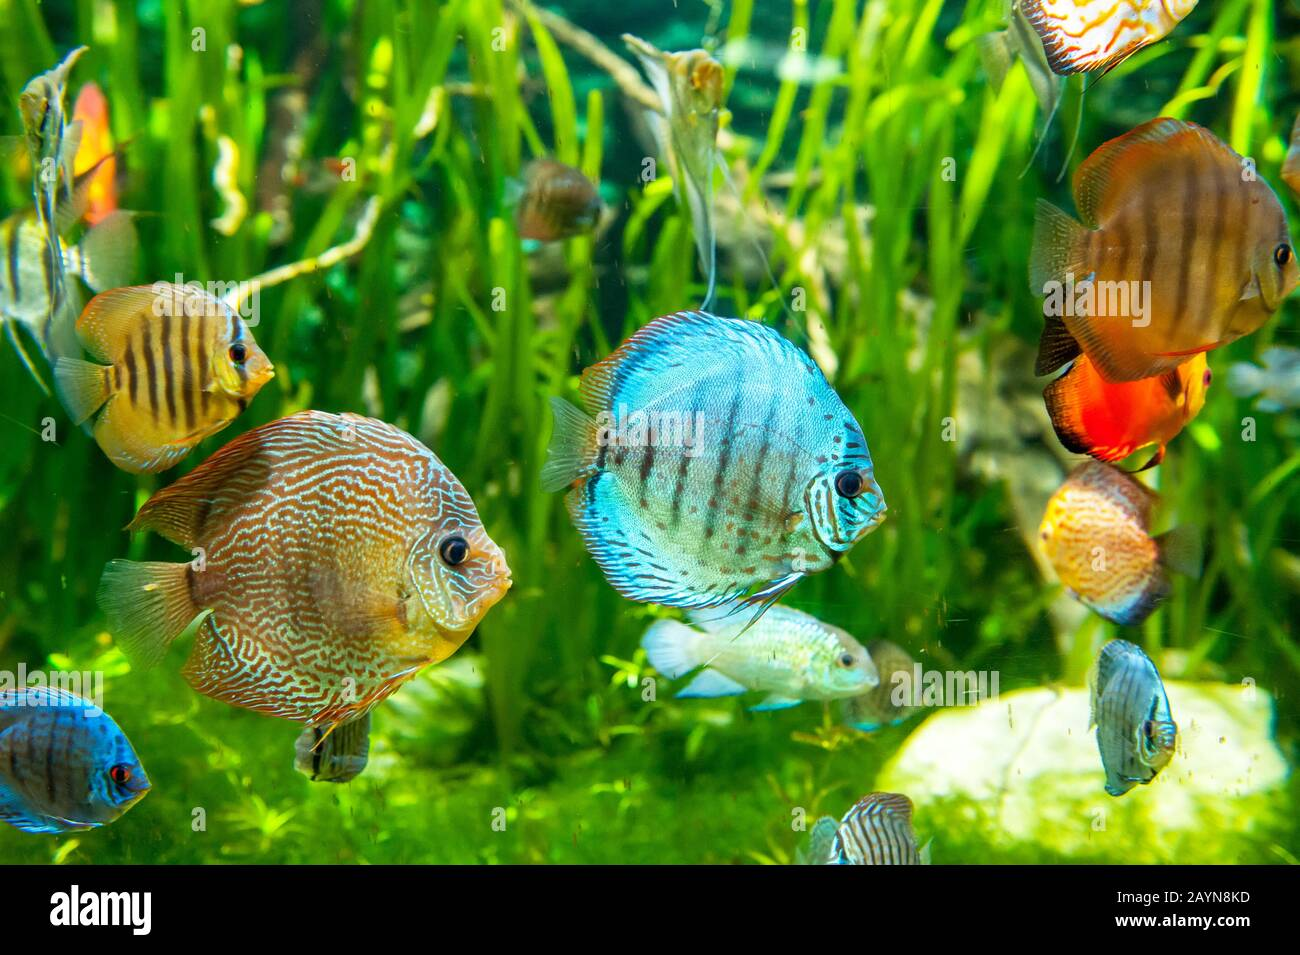 Wonderful And Beautiful Underwater World With Tropical Fishes Stock Photo Alamy